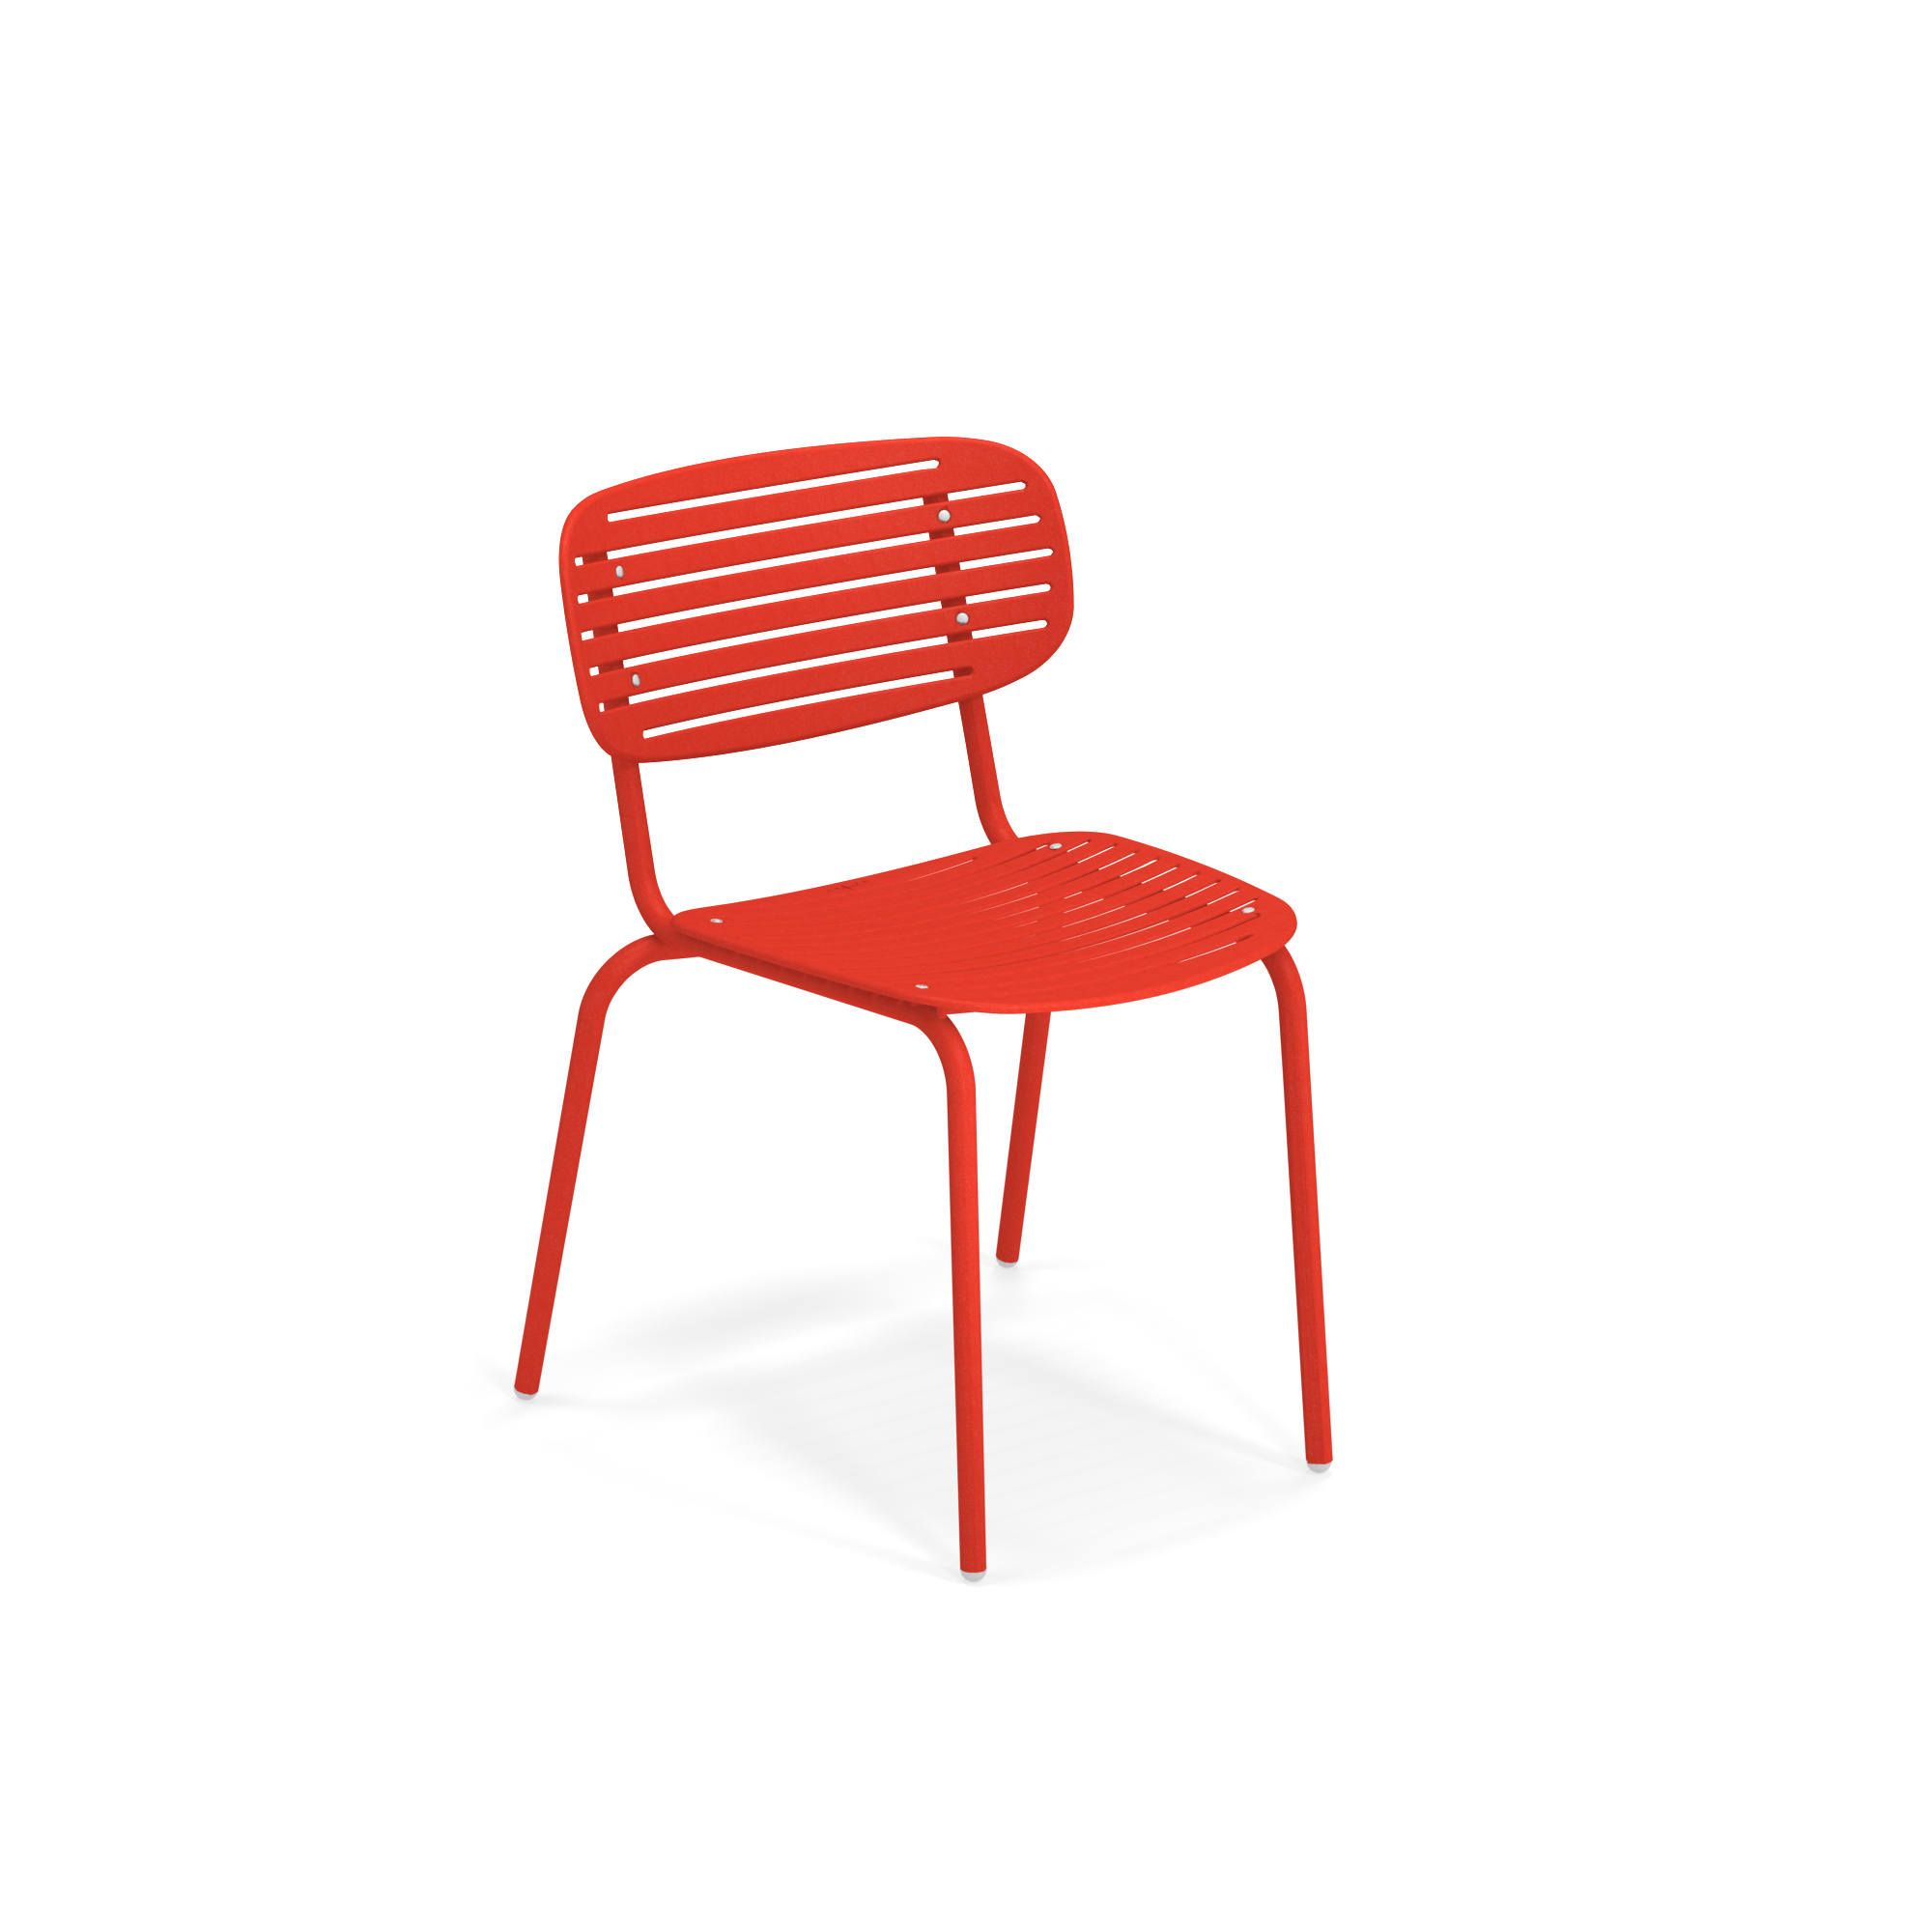 emuamericas, llc 639-50 chair, side, stacking, outdoor